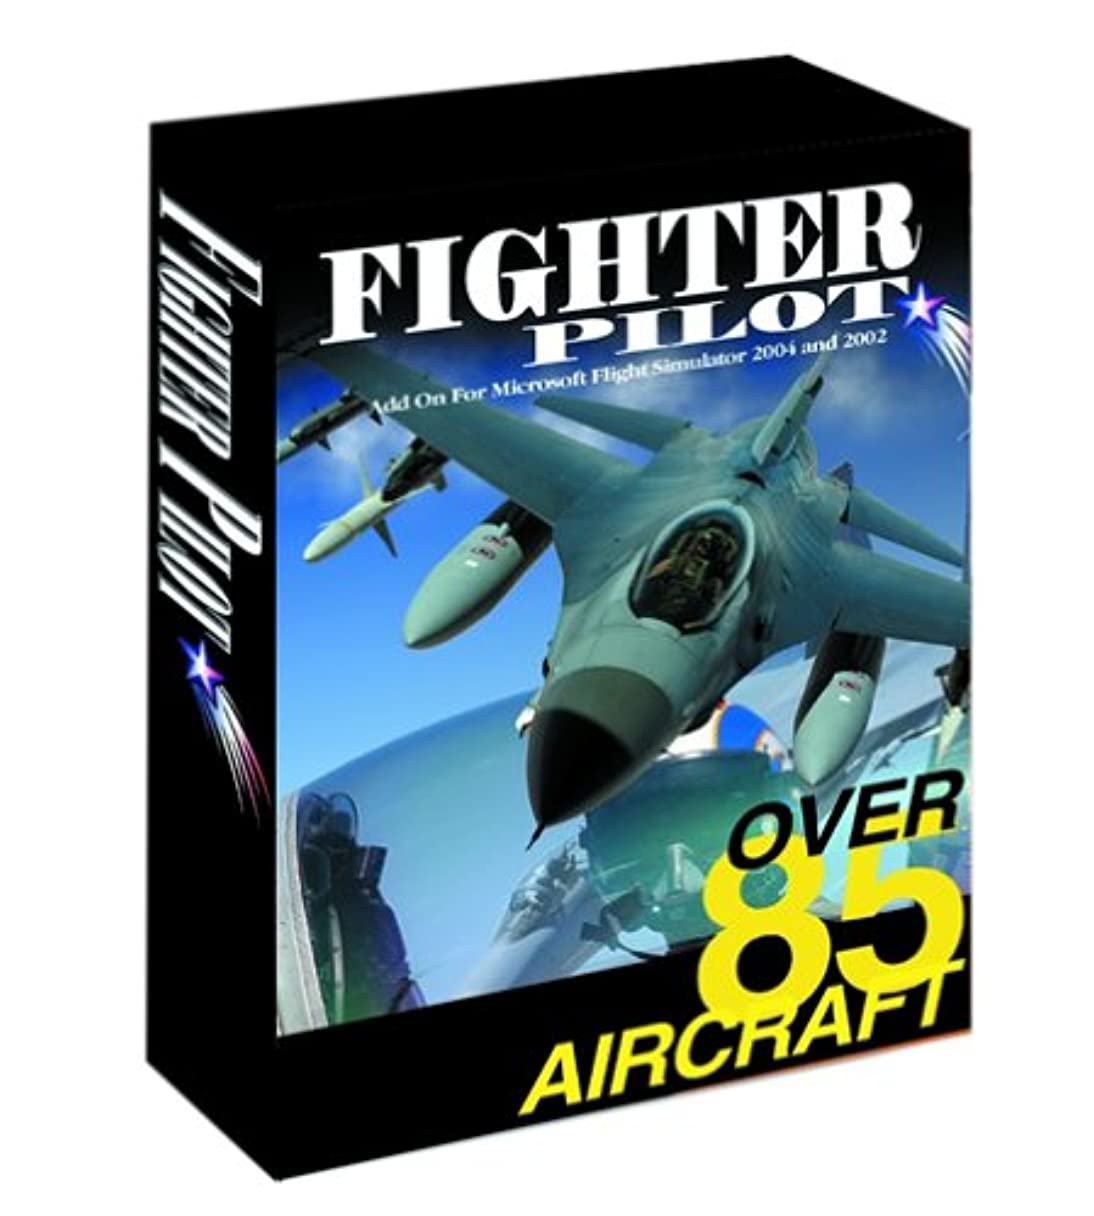 Fighter Pilot For Microsoft Flight Simulator 2004 & 2002 (輸入版)